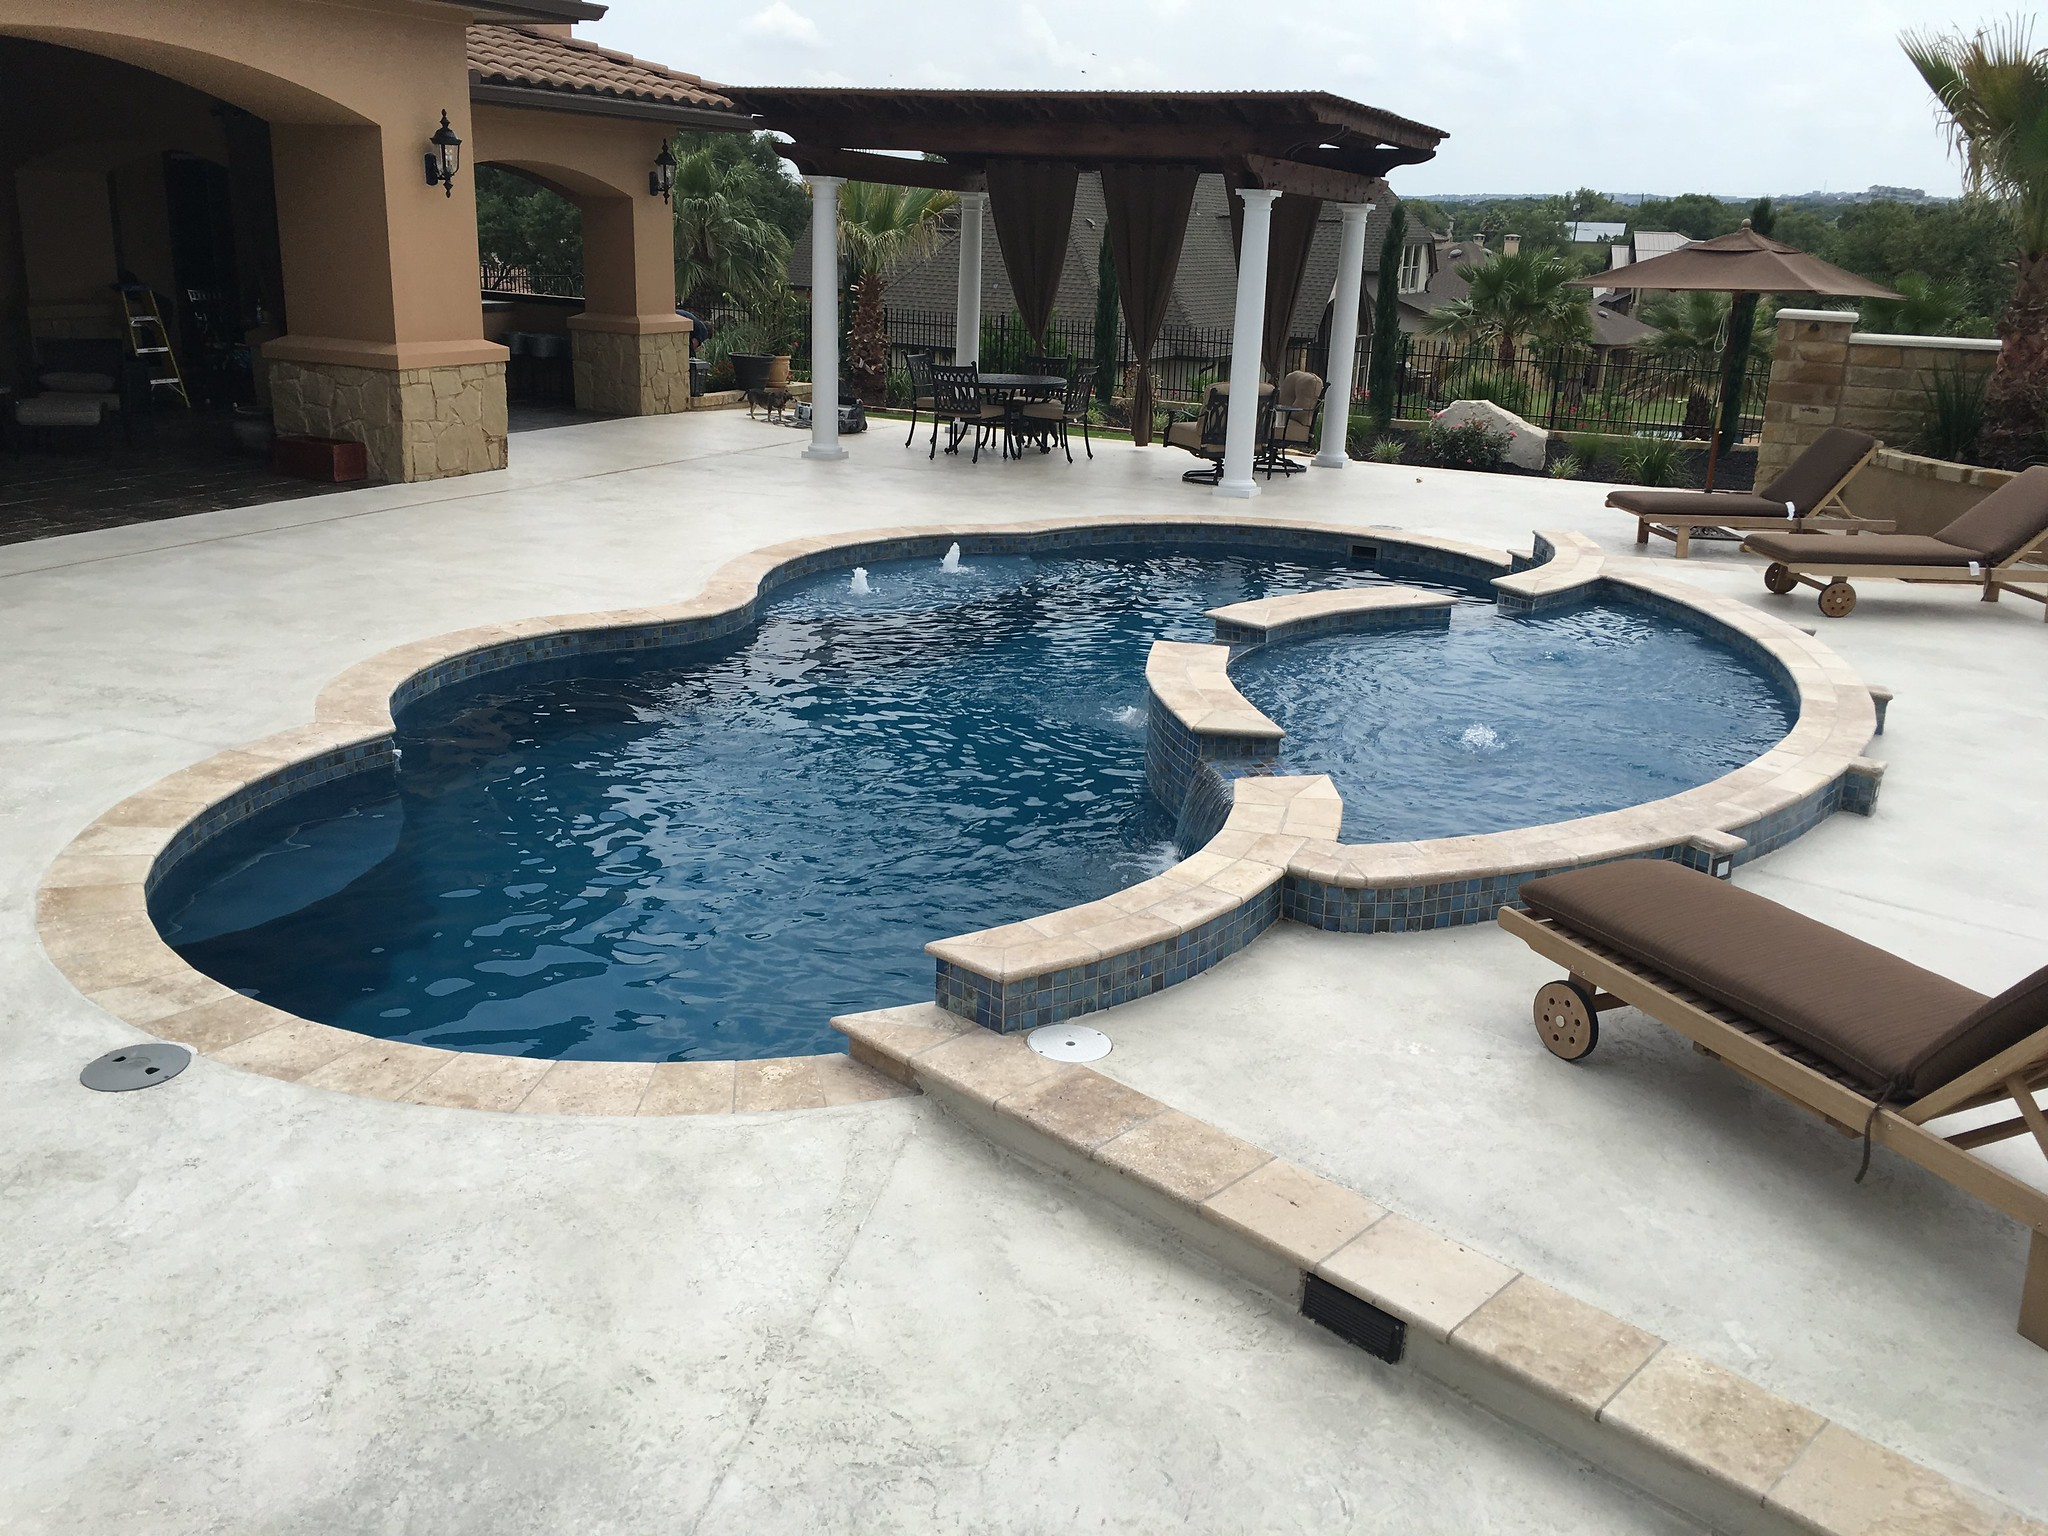 Build a pool with tanning ledge